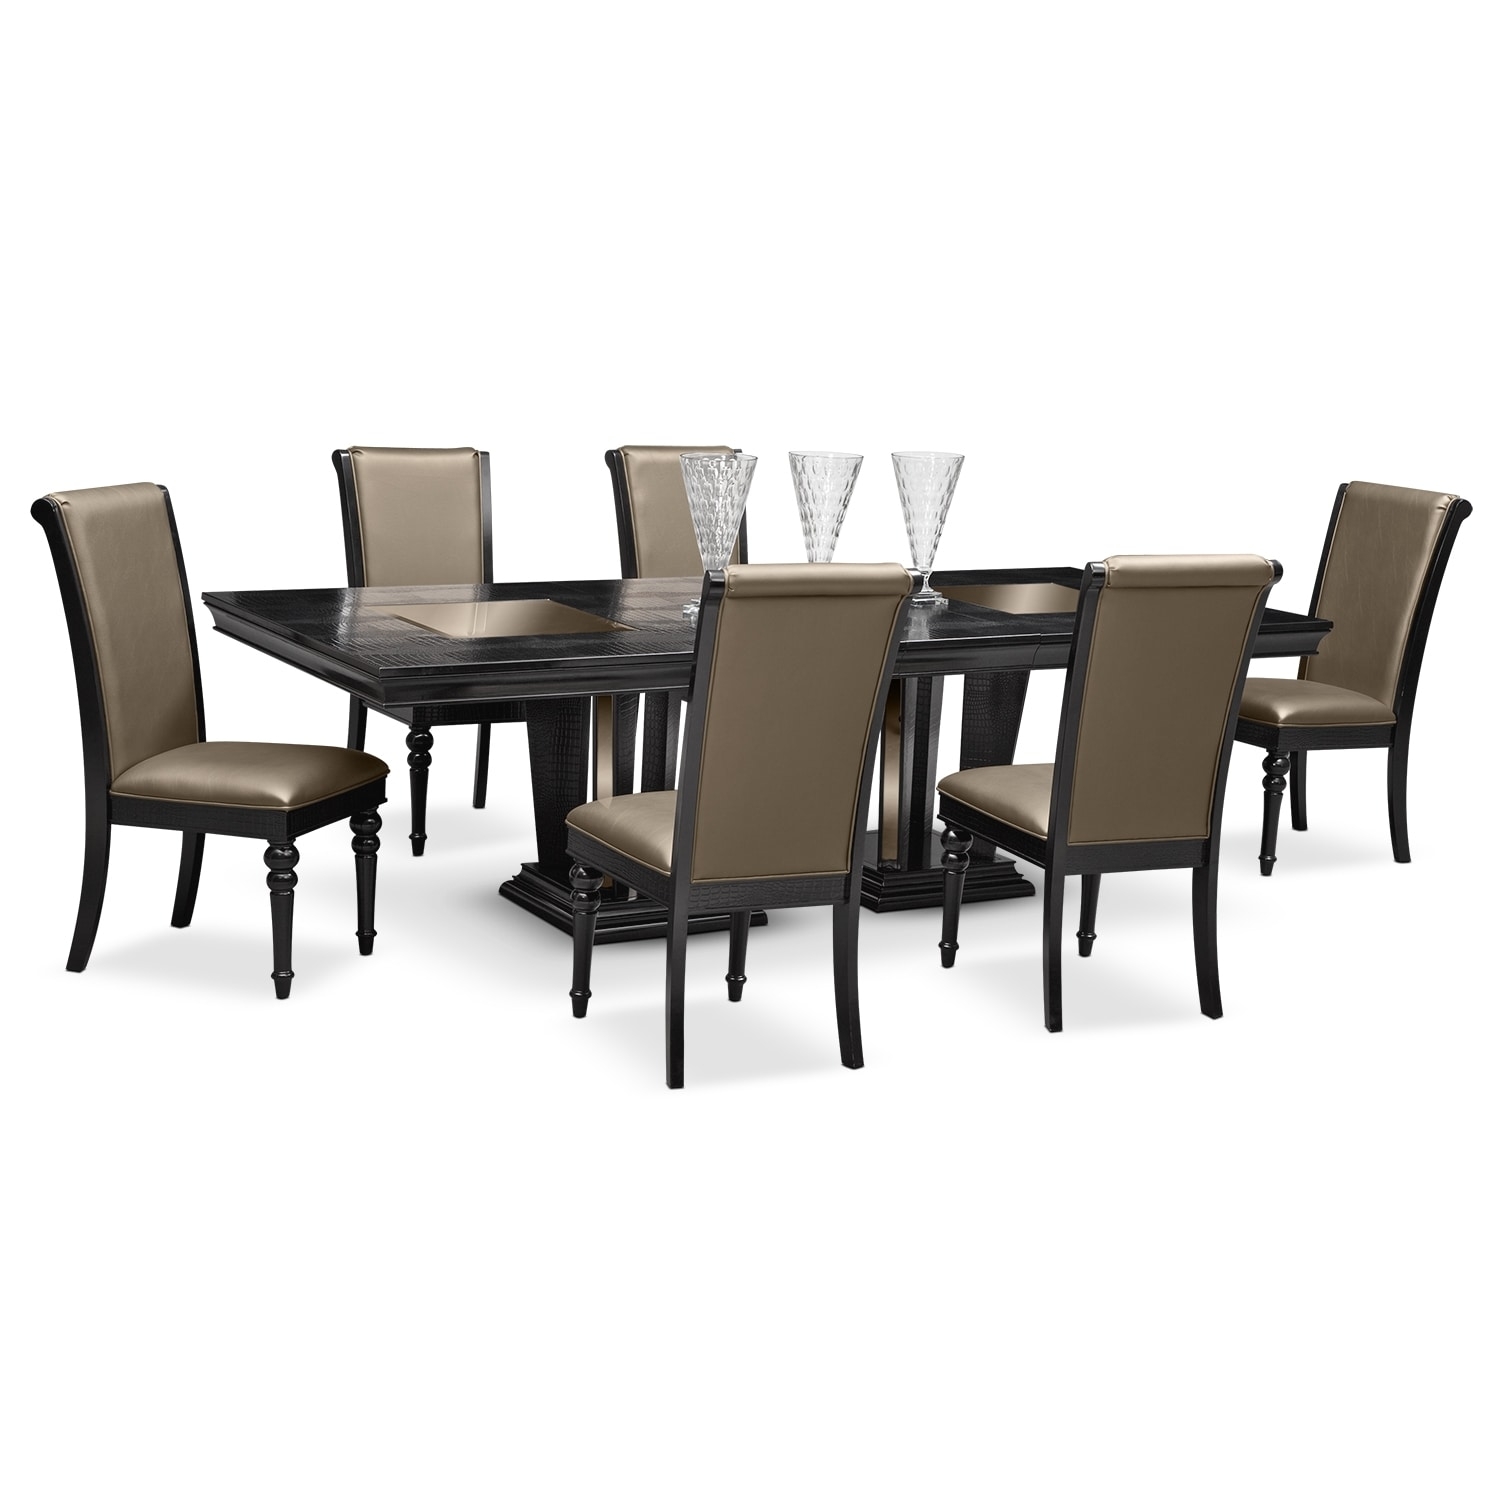 Dining Room Furniture - Paradiso 7 Pc. Dining Room